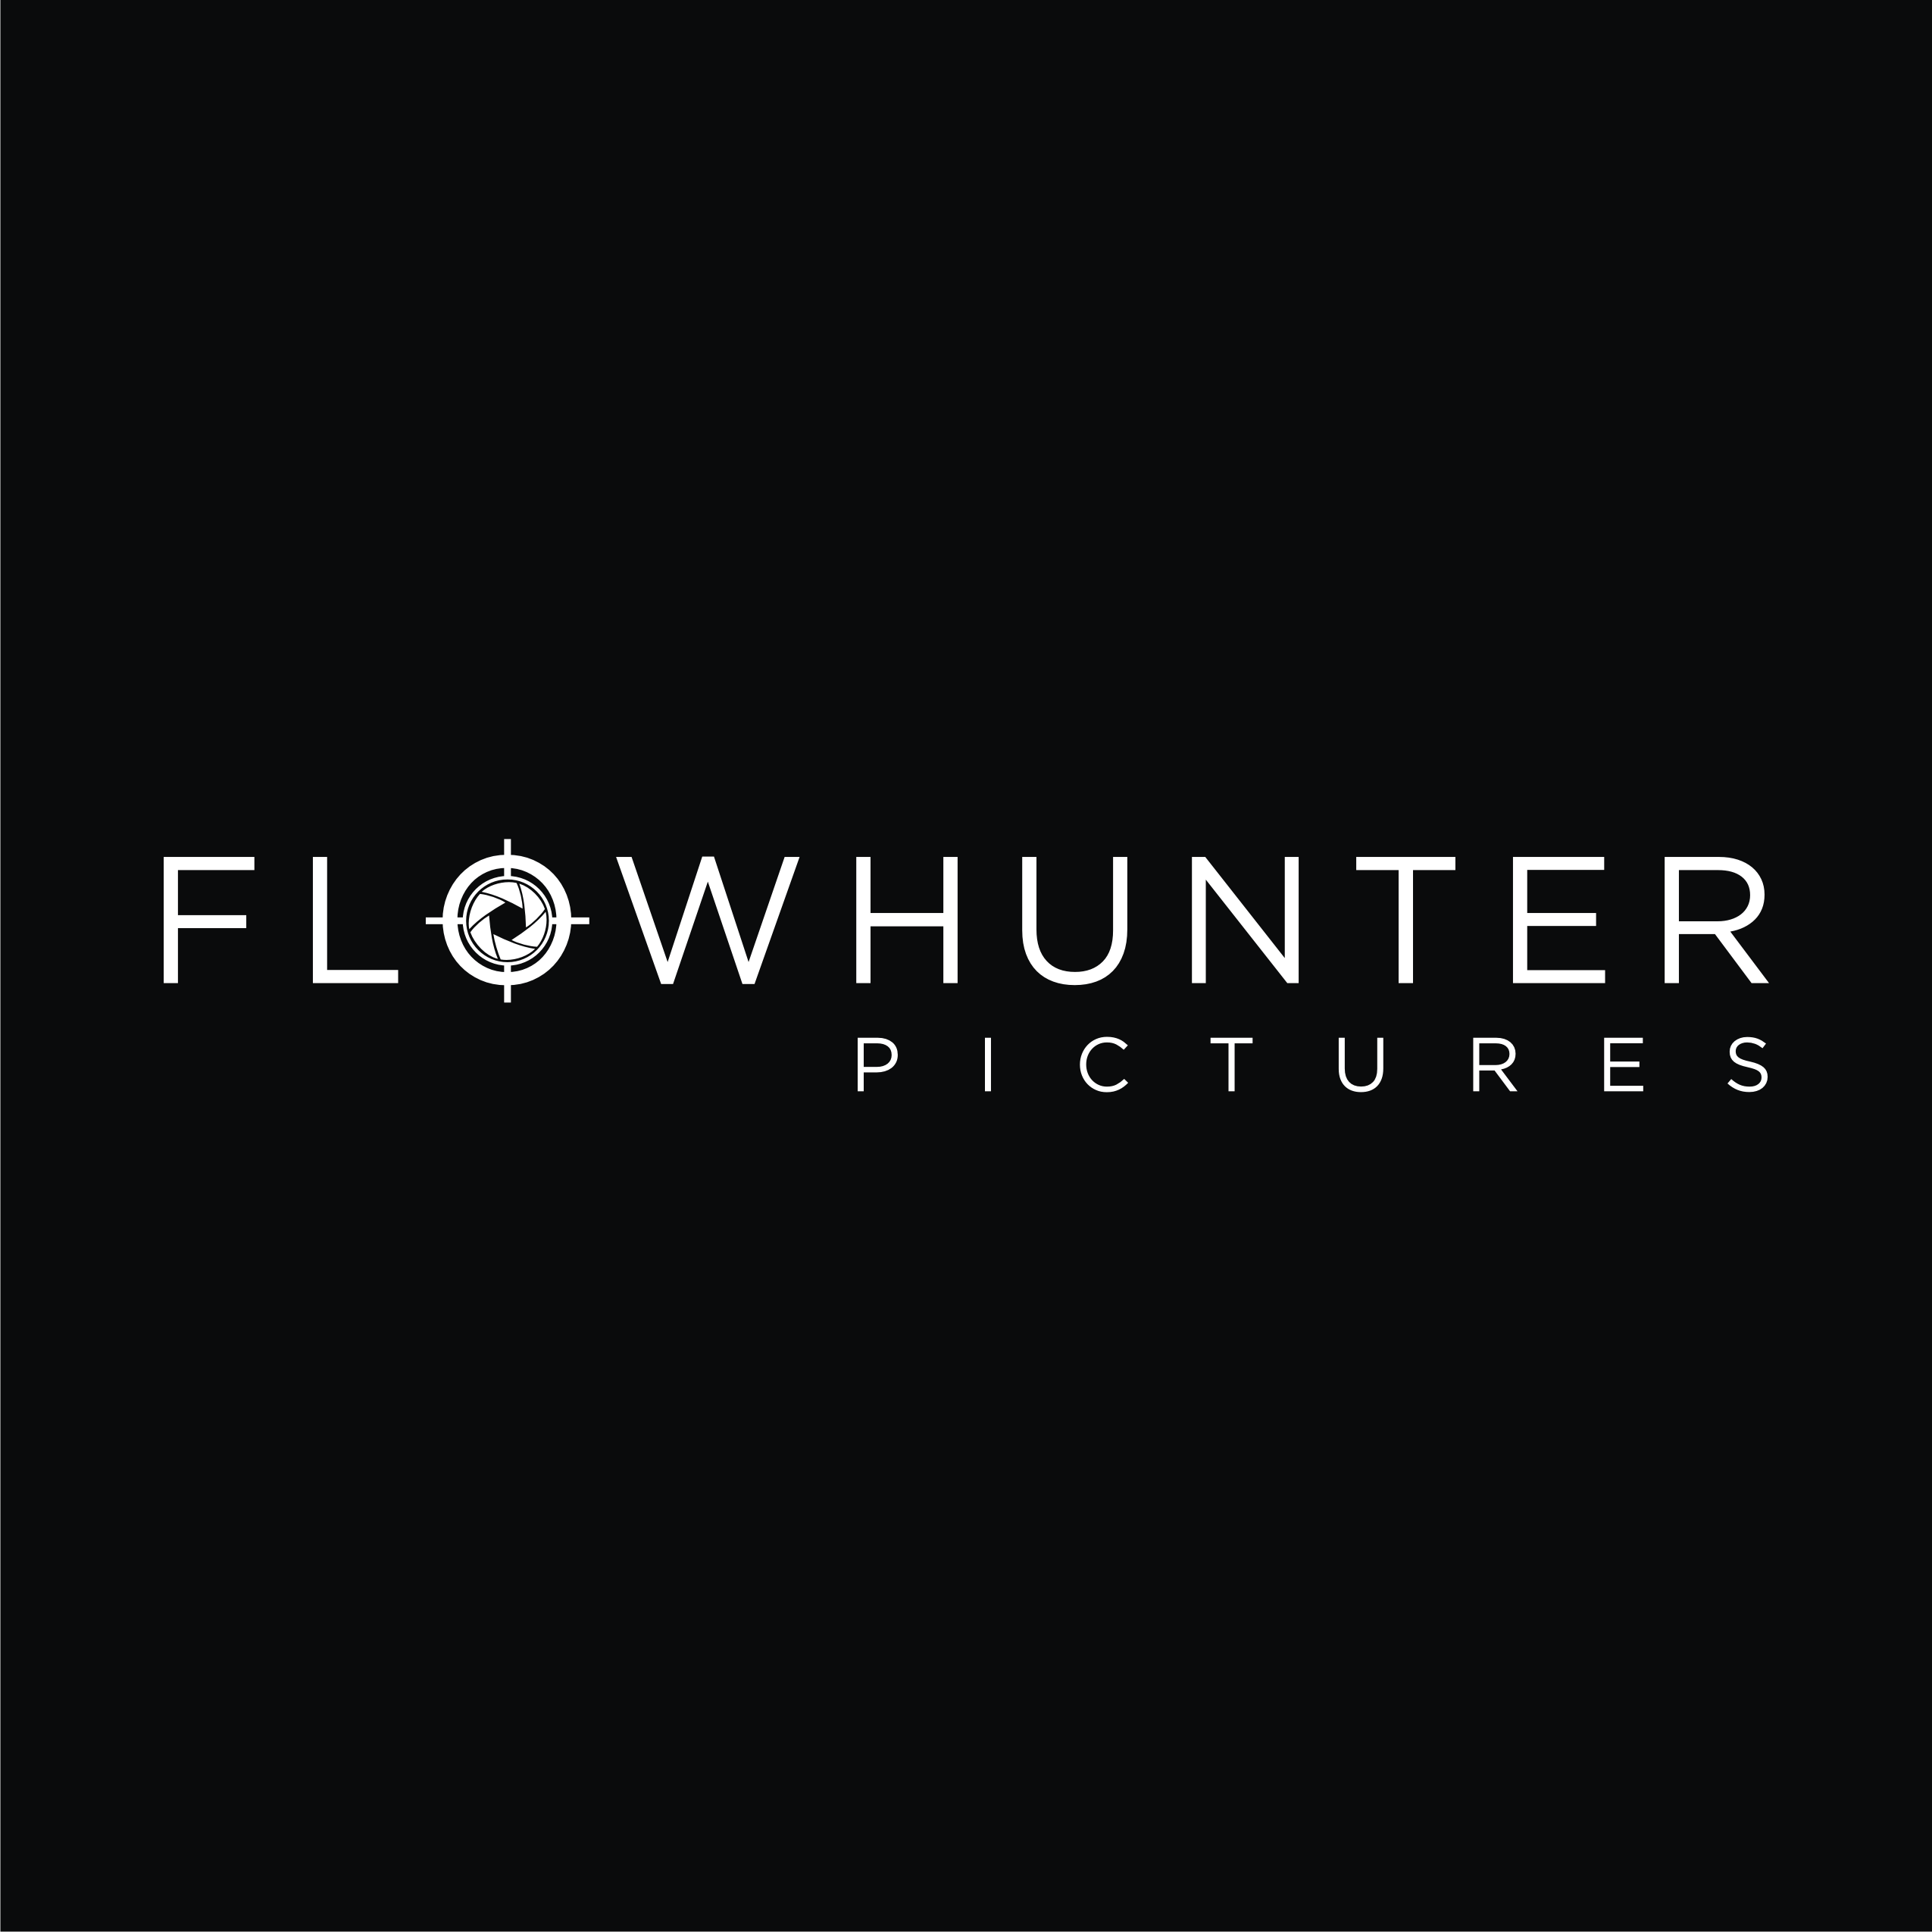 "Photography ""flowhunter pictures"" needs a logo"